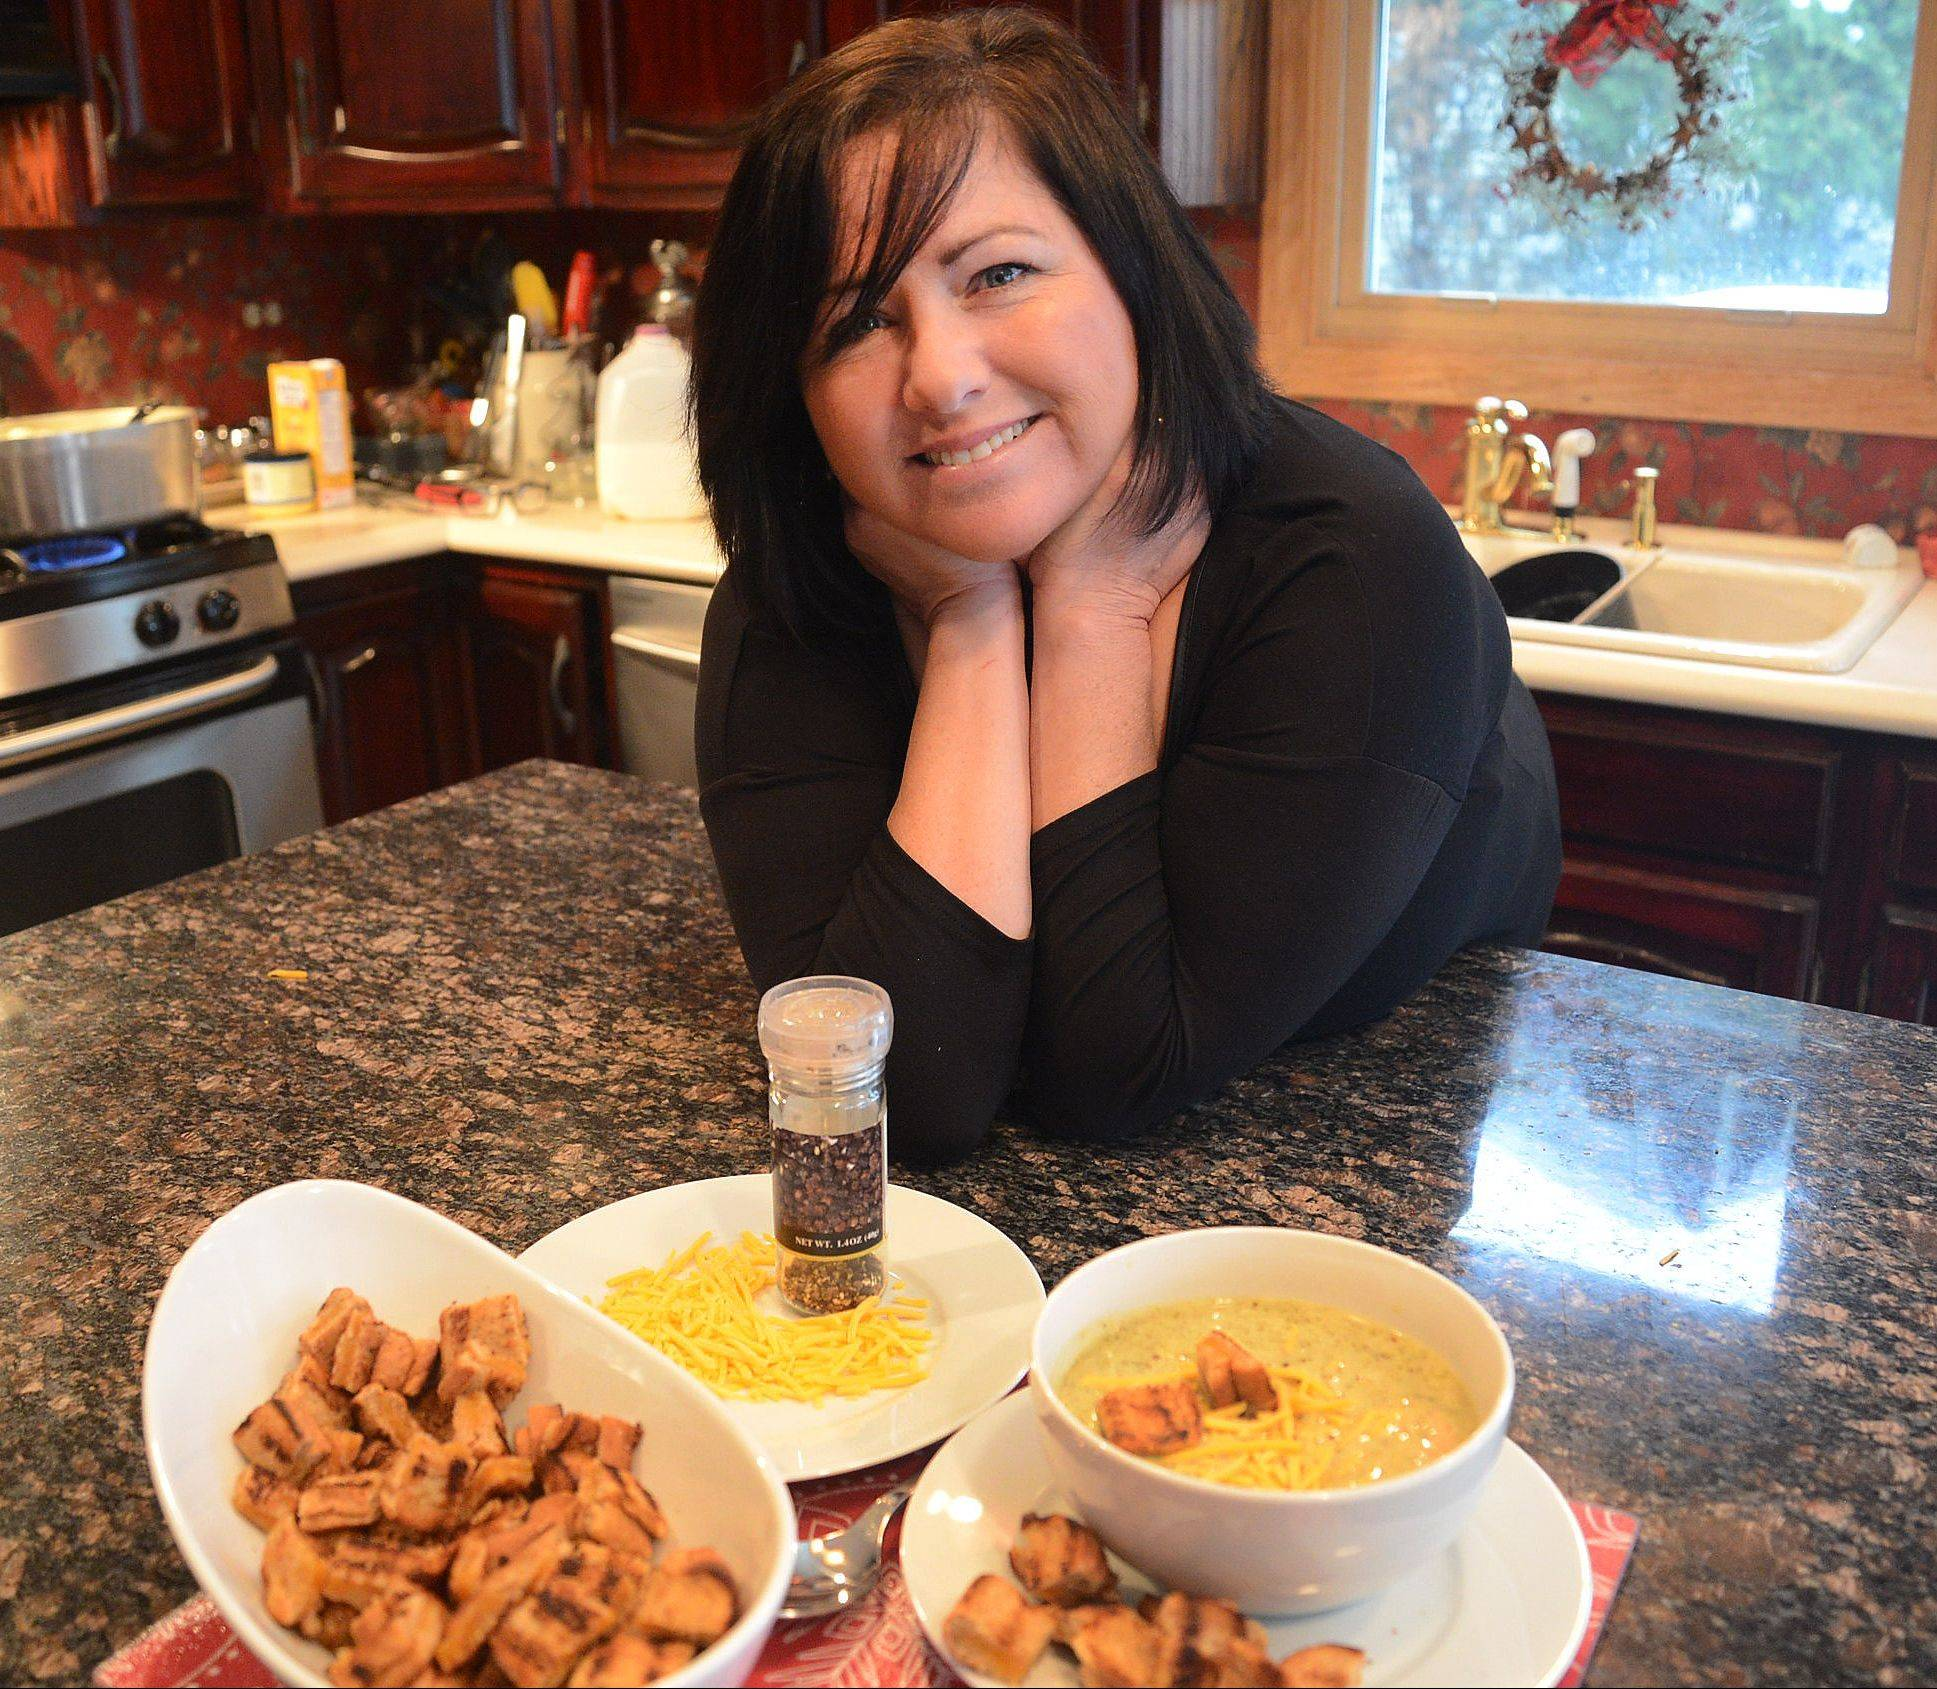 It doesn't matter if she's cooking for 20 or 200, Patty Nicpon puts her heart into her meals. Patty shares her recipe for grilled pork and vegetables at dailyherald.com/lifestyle/food.